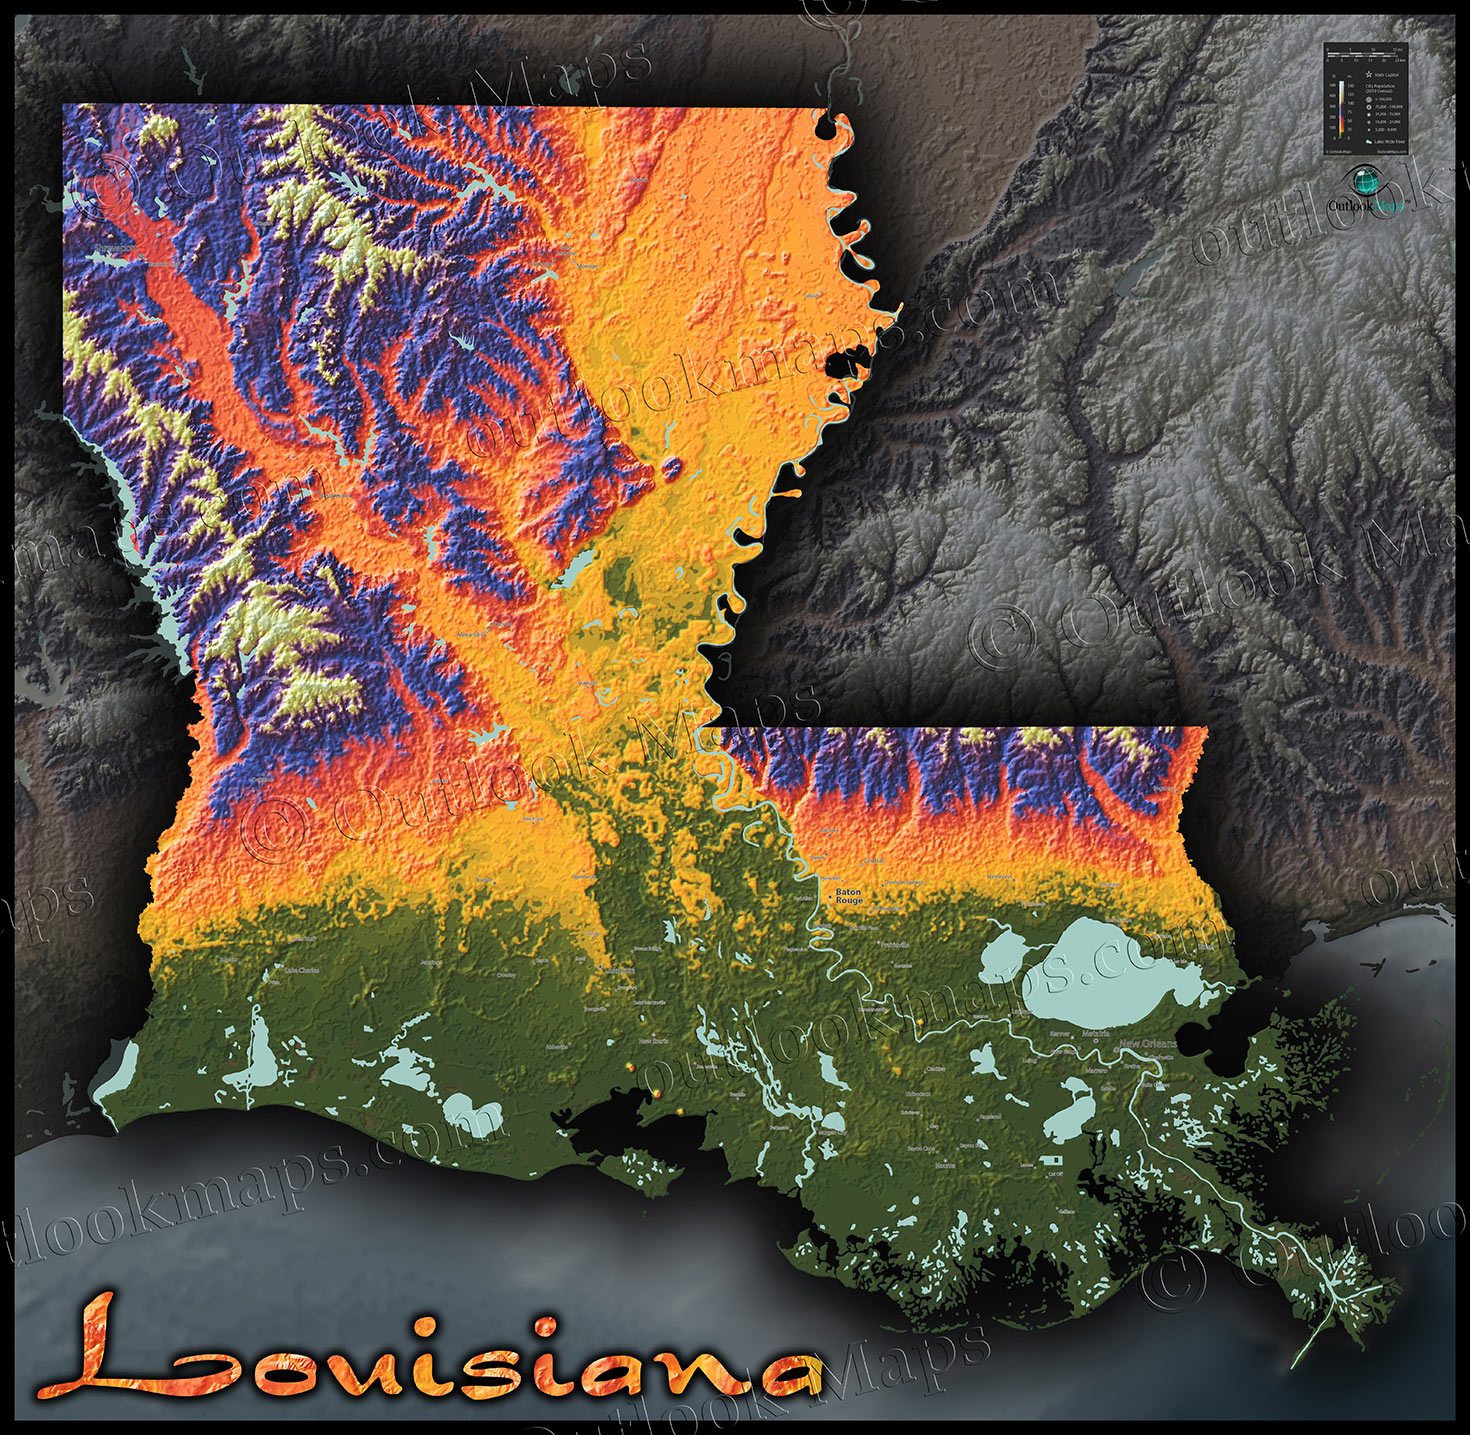 mississippi physical map with Louisiana Topographic Map on Geology And Geological History additionally Turkmenistan Satellite Image together with Botswana Satellite Image further Burkina Faso Satellite Image as well Ireland River Map.